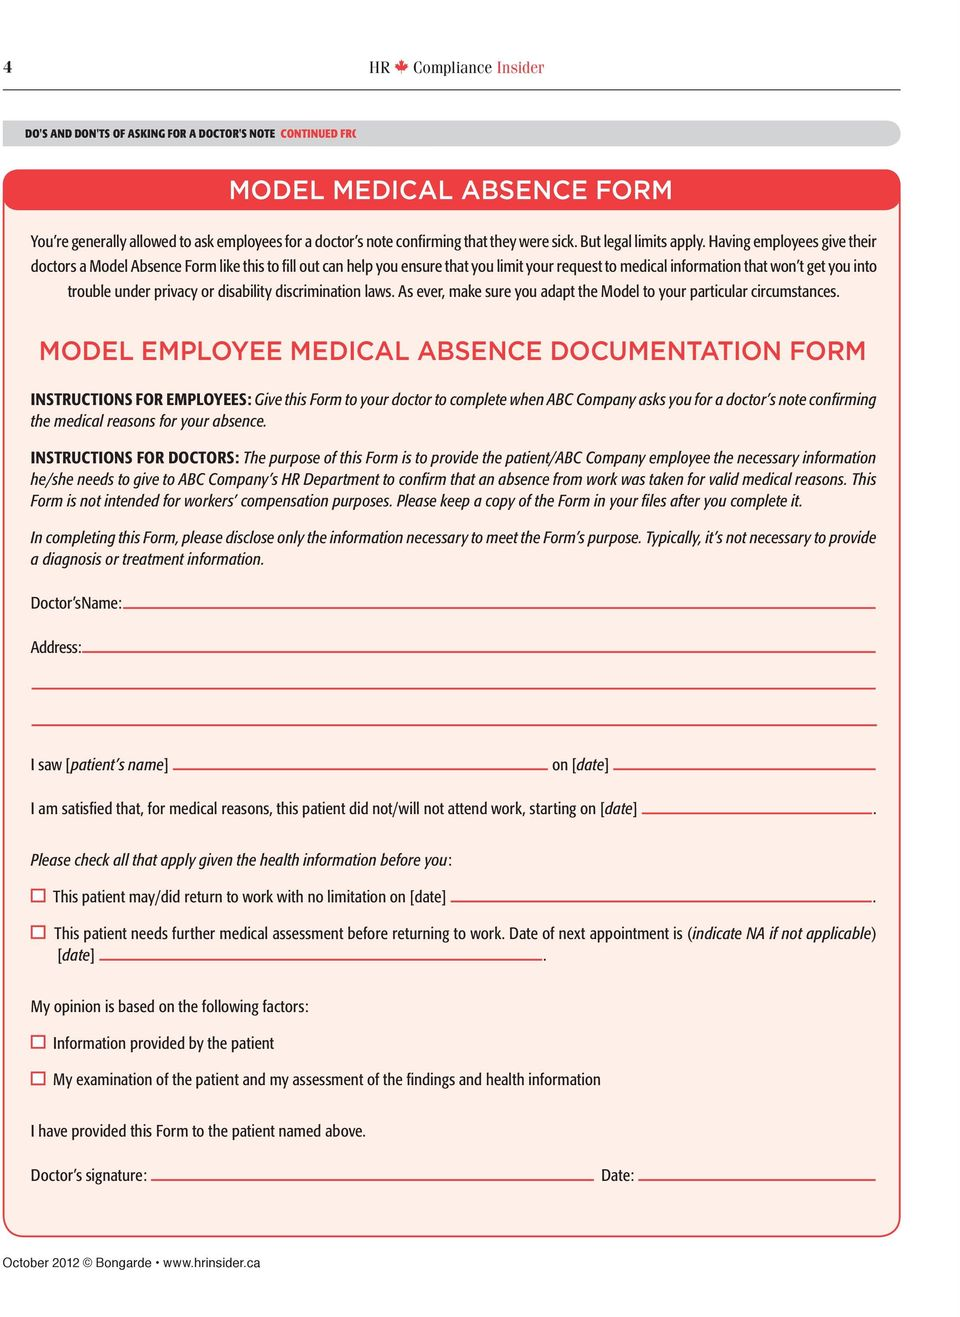 Having employees give their doctors a Model Absence Form like this to fill out can help you ensure that you limit your request to medical information that won t get you into trouble under privacy or